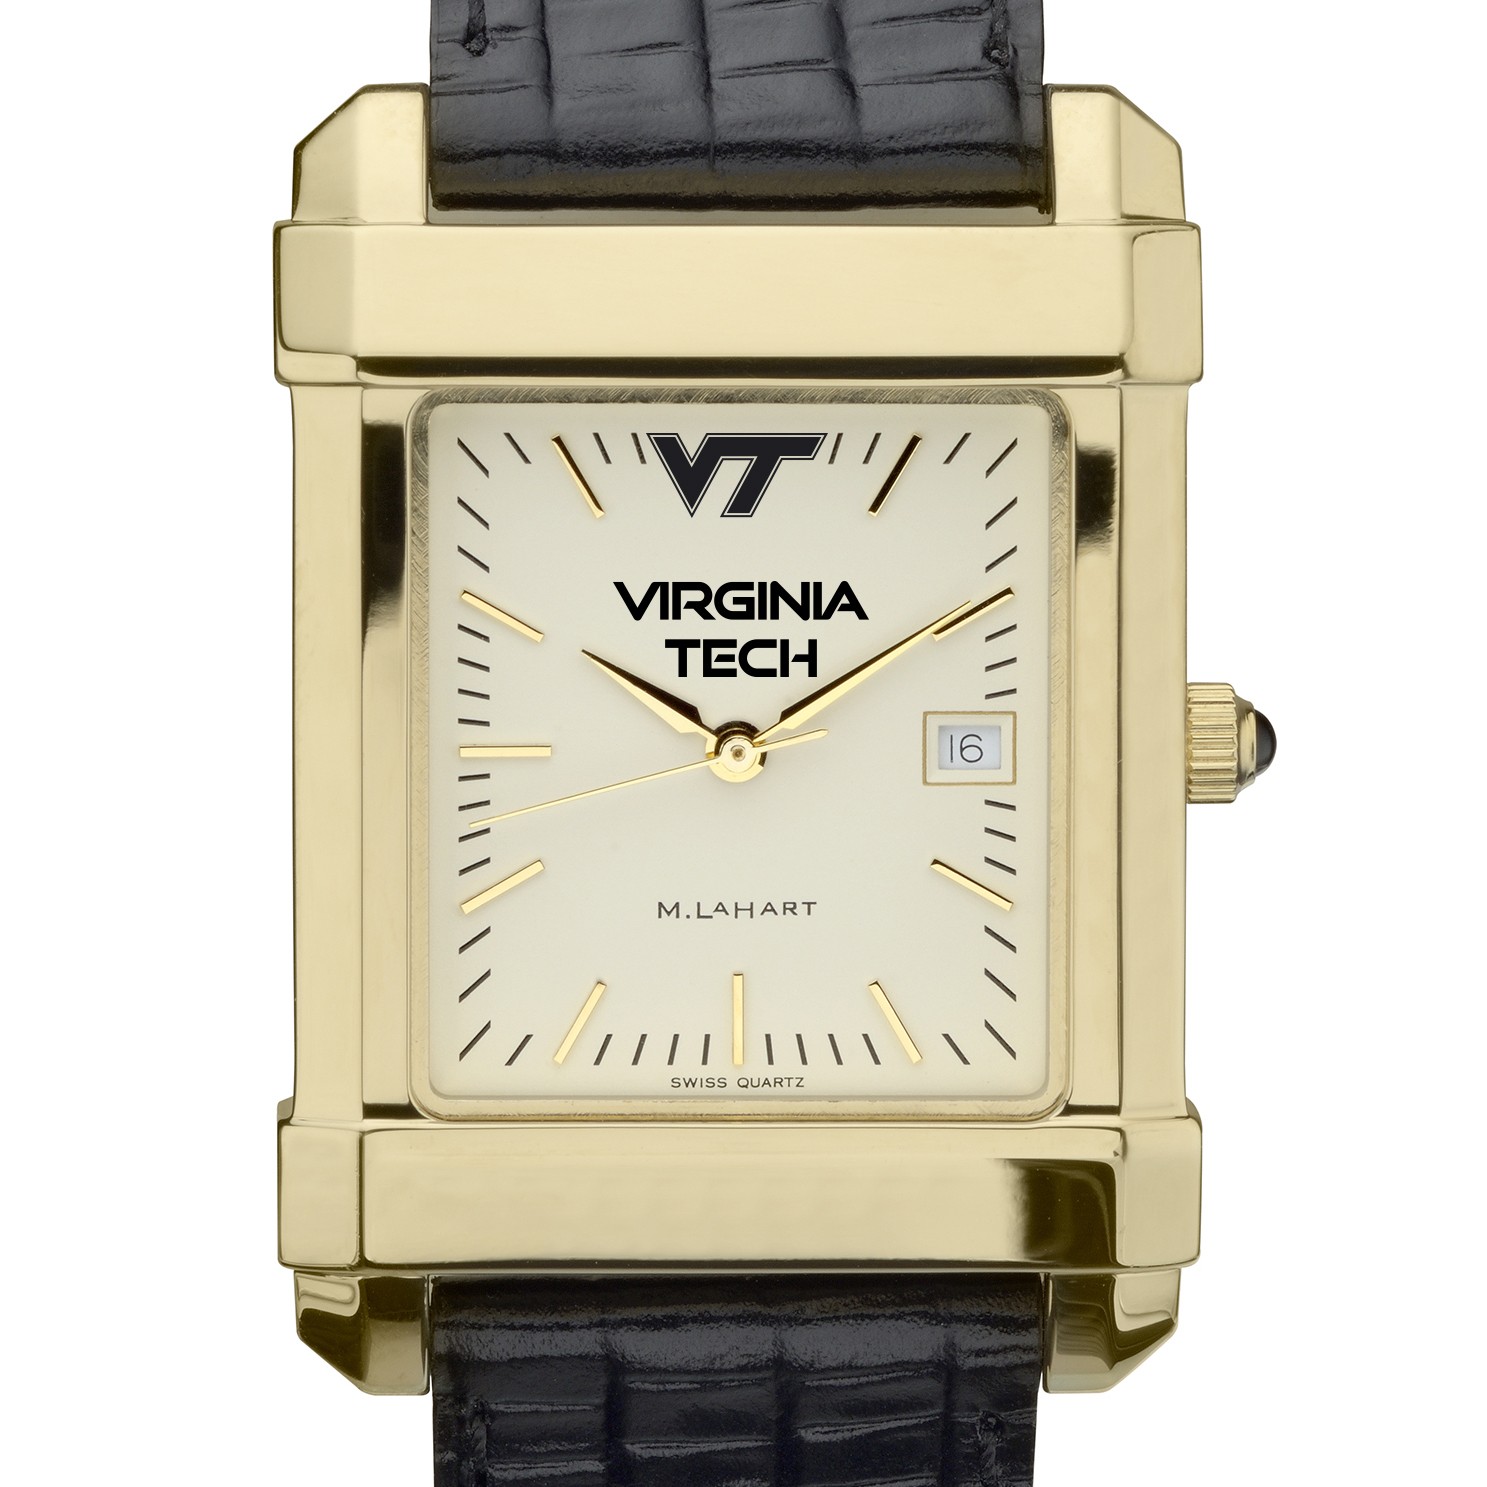 Virgina Tech Men's Gold Quad Watch with Leather Strap